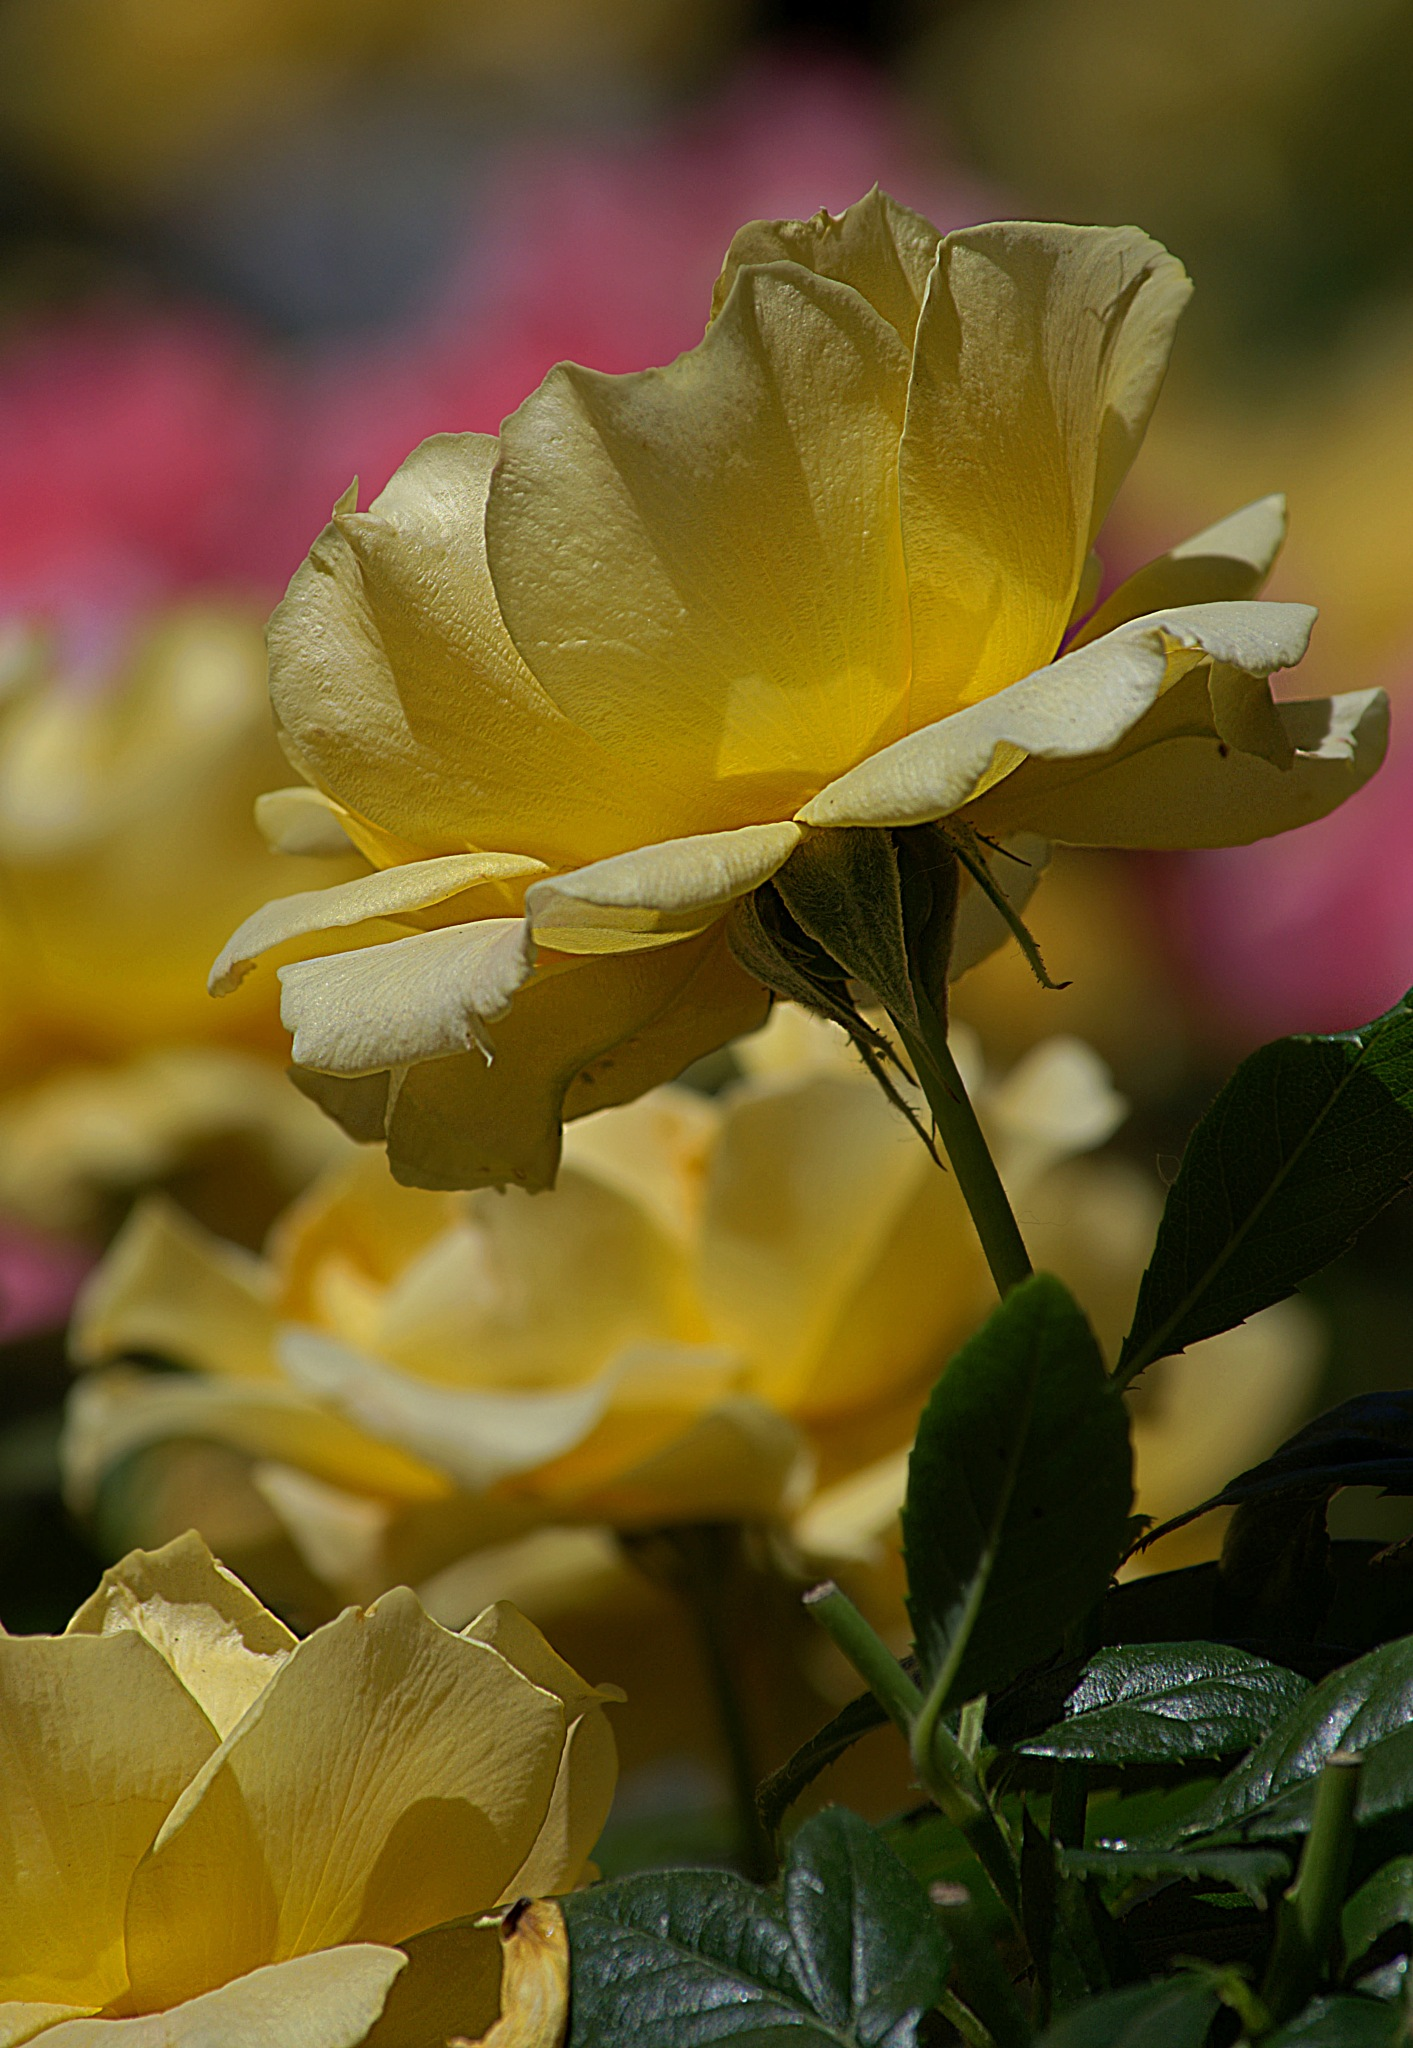 Yellow Roses by pscottwong